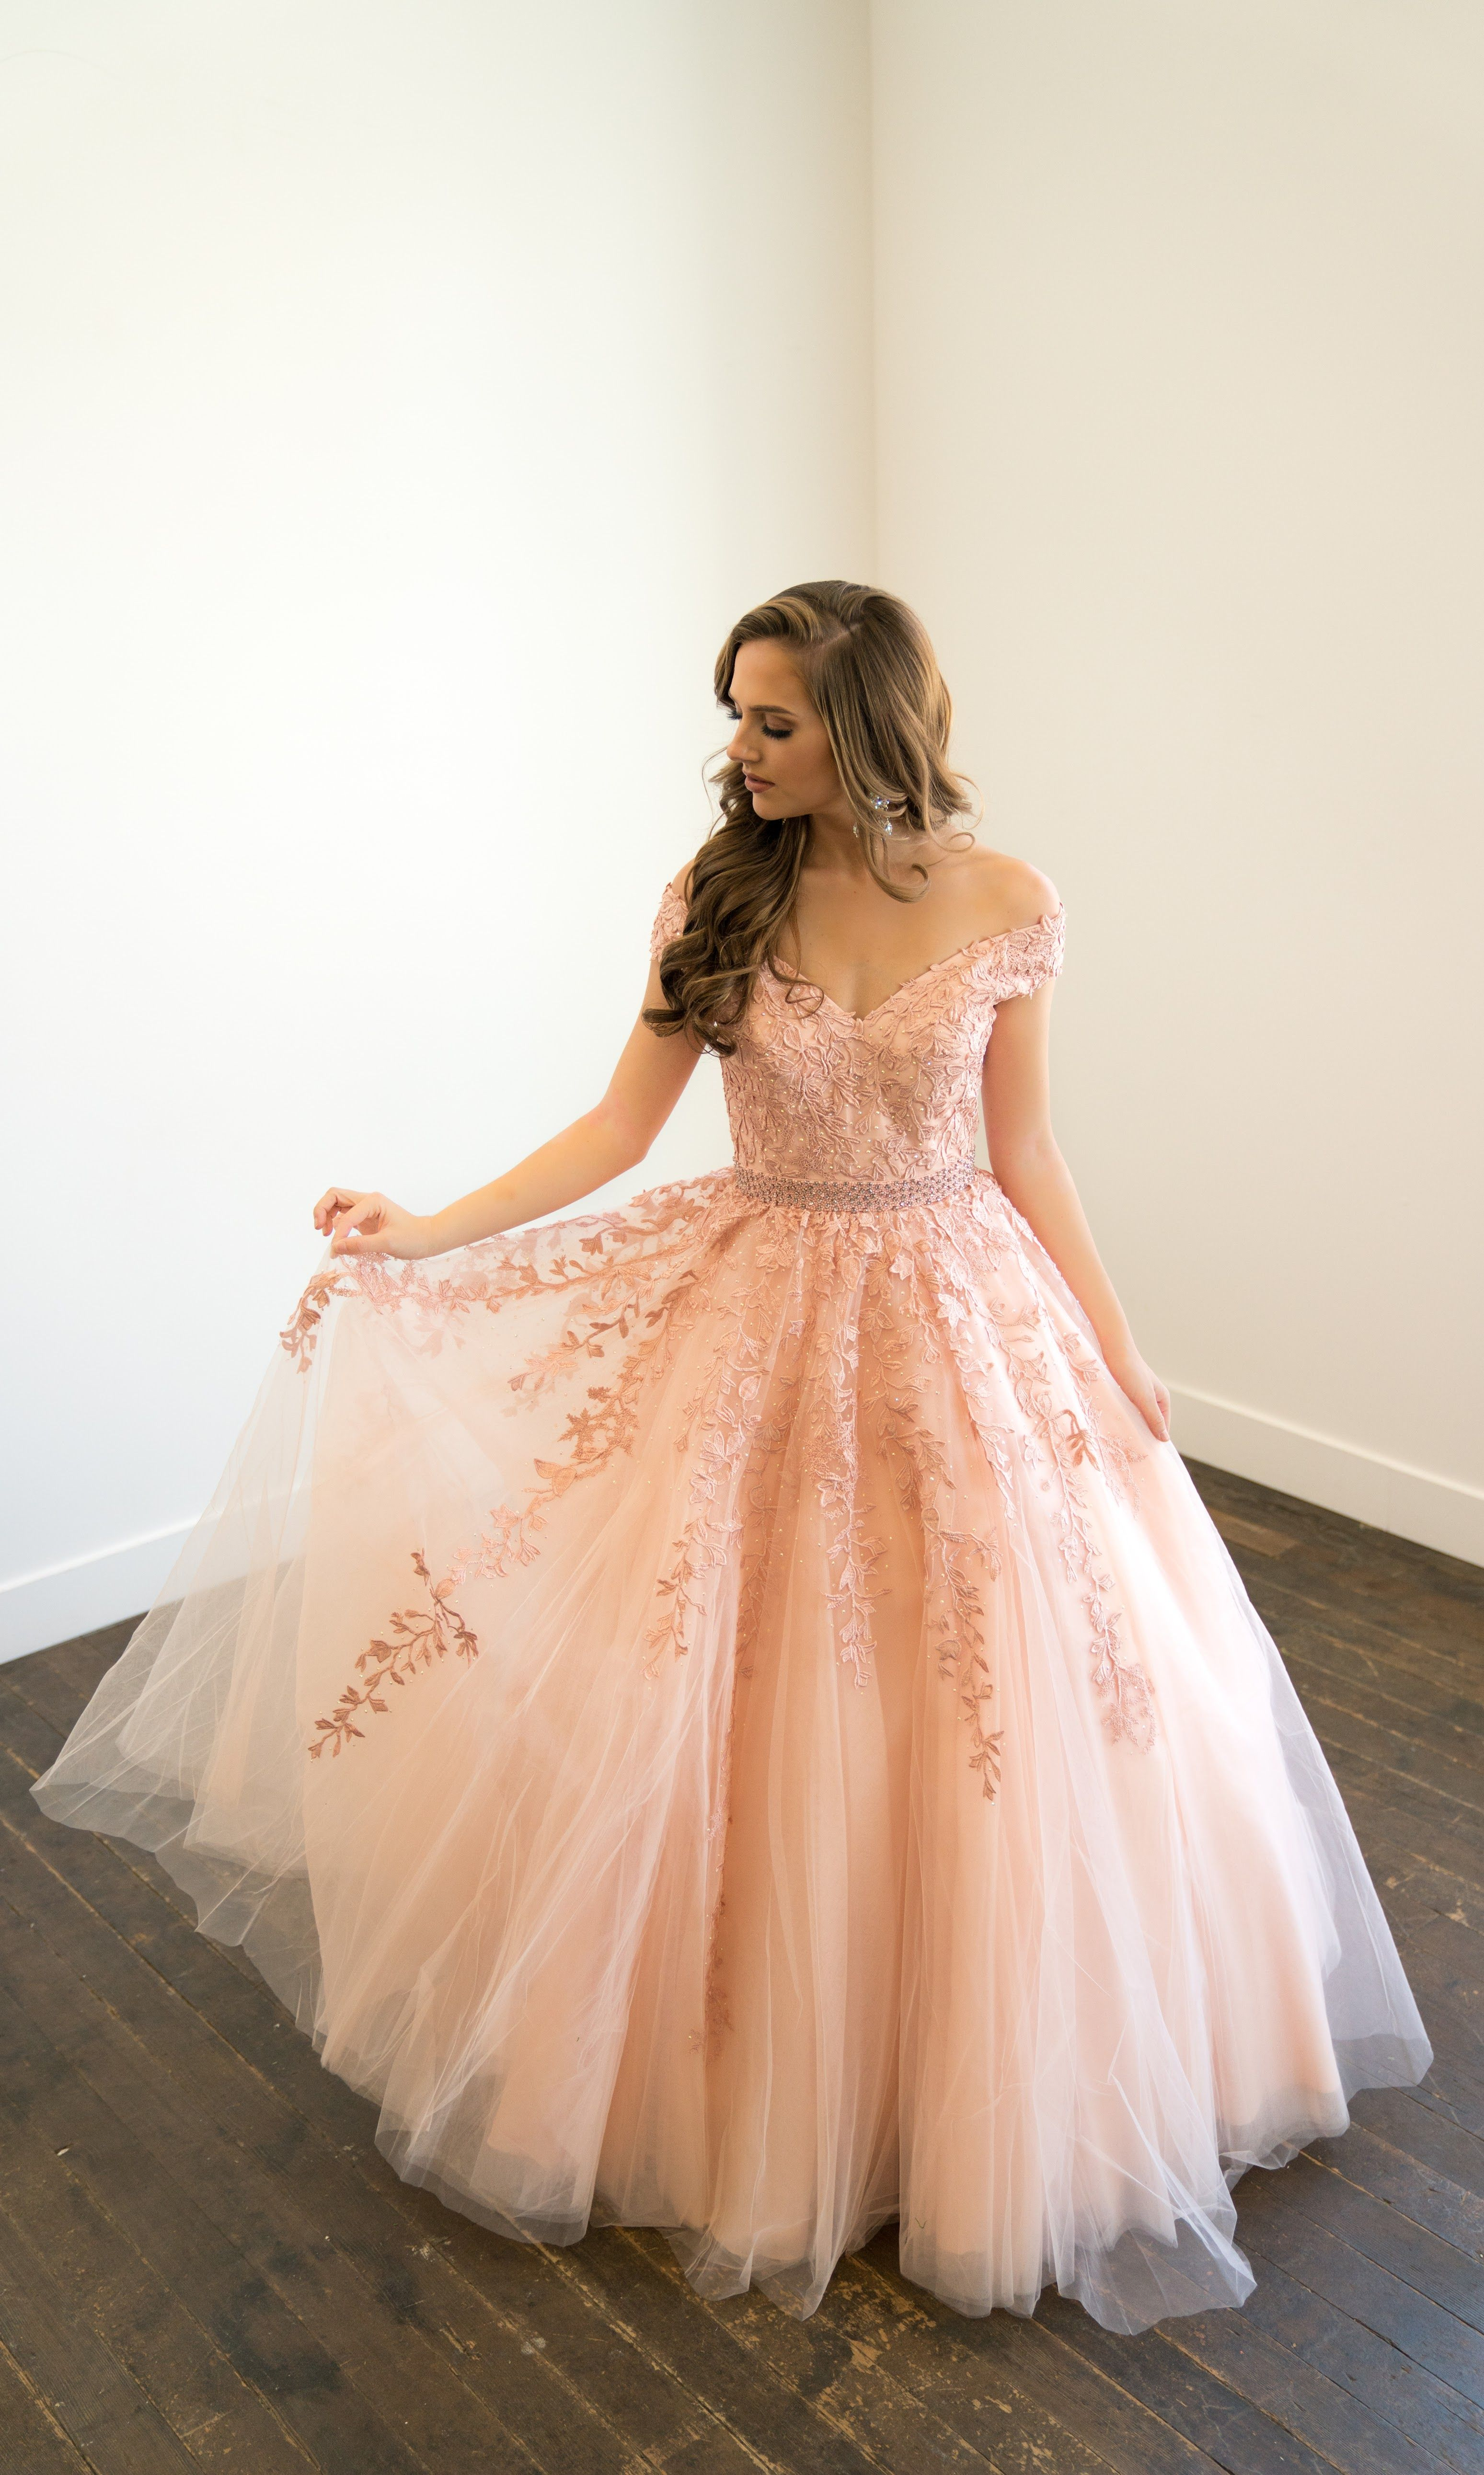 2d3fe79c39e SHERRI HILL 51905 Spring 2018 Collection YPSILON DRESSES Blush Light Pink  Ballgown Floral Appliqué Prom Pageant Evening Wear Formalwear